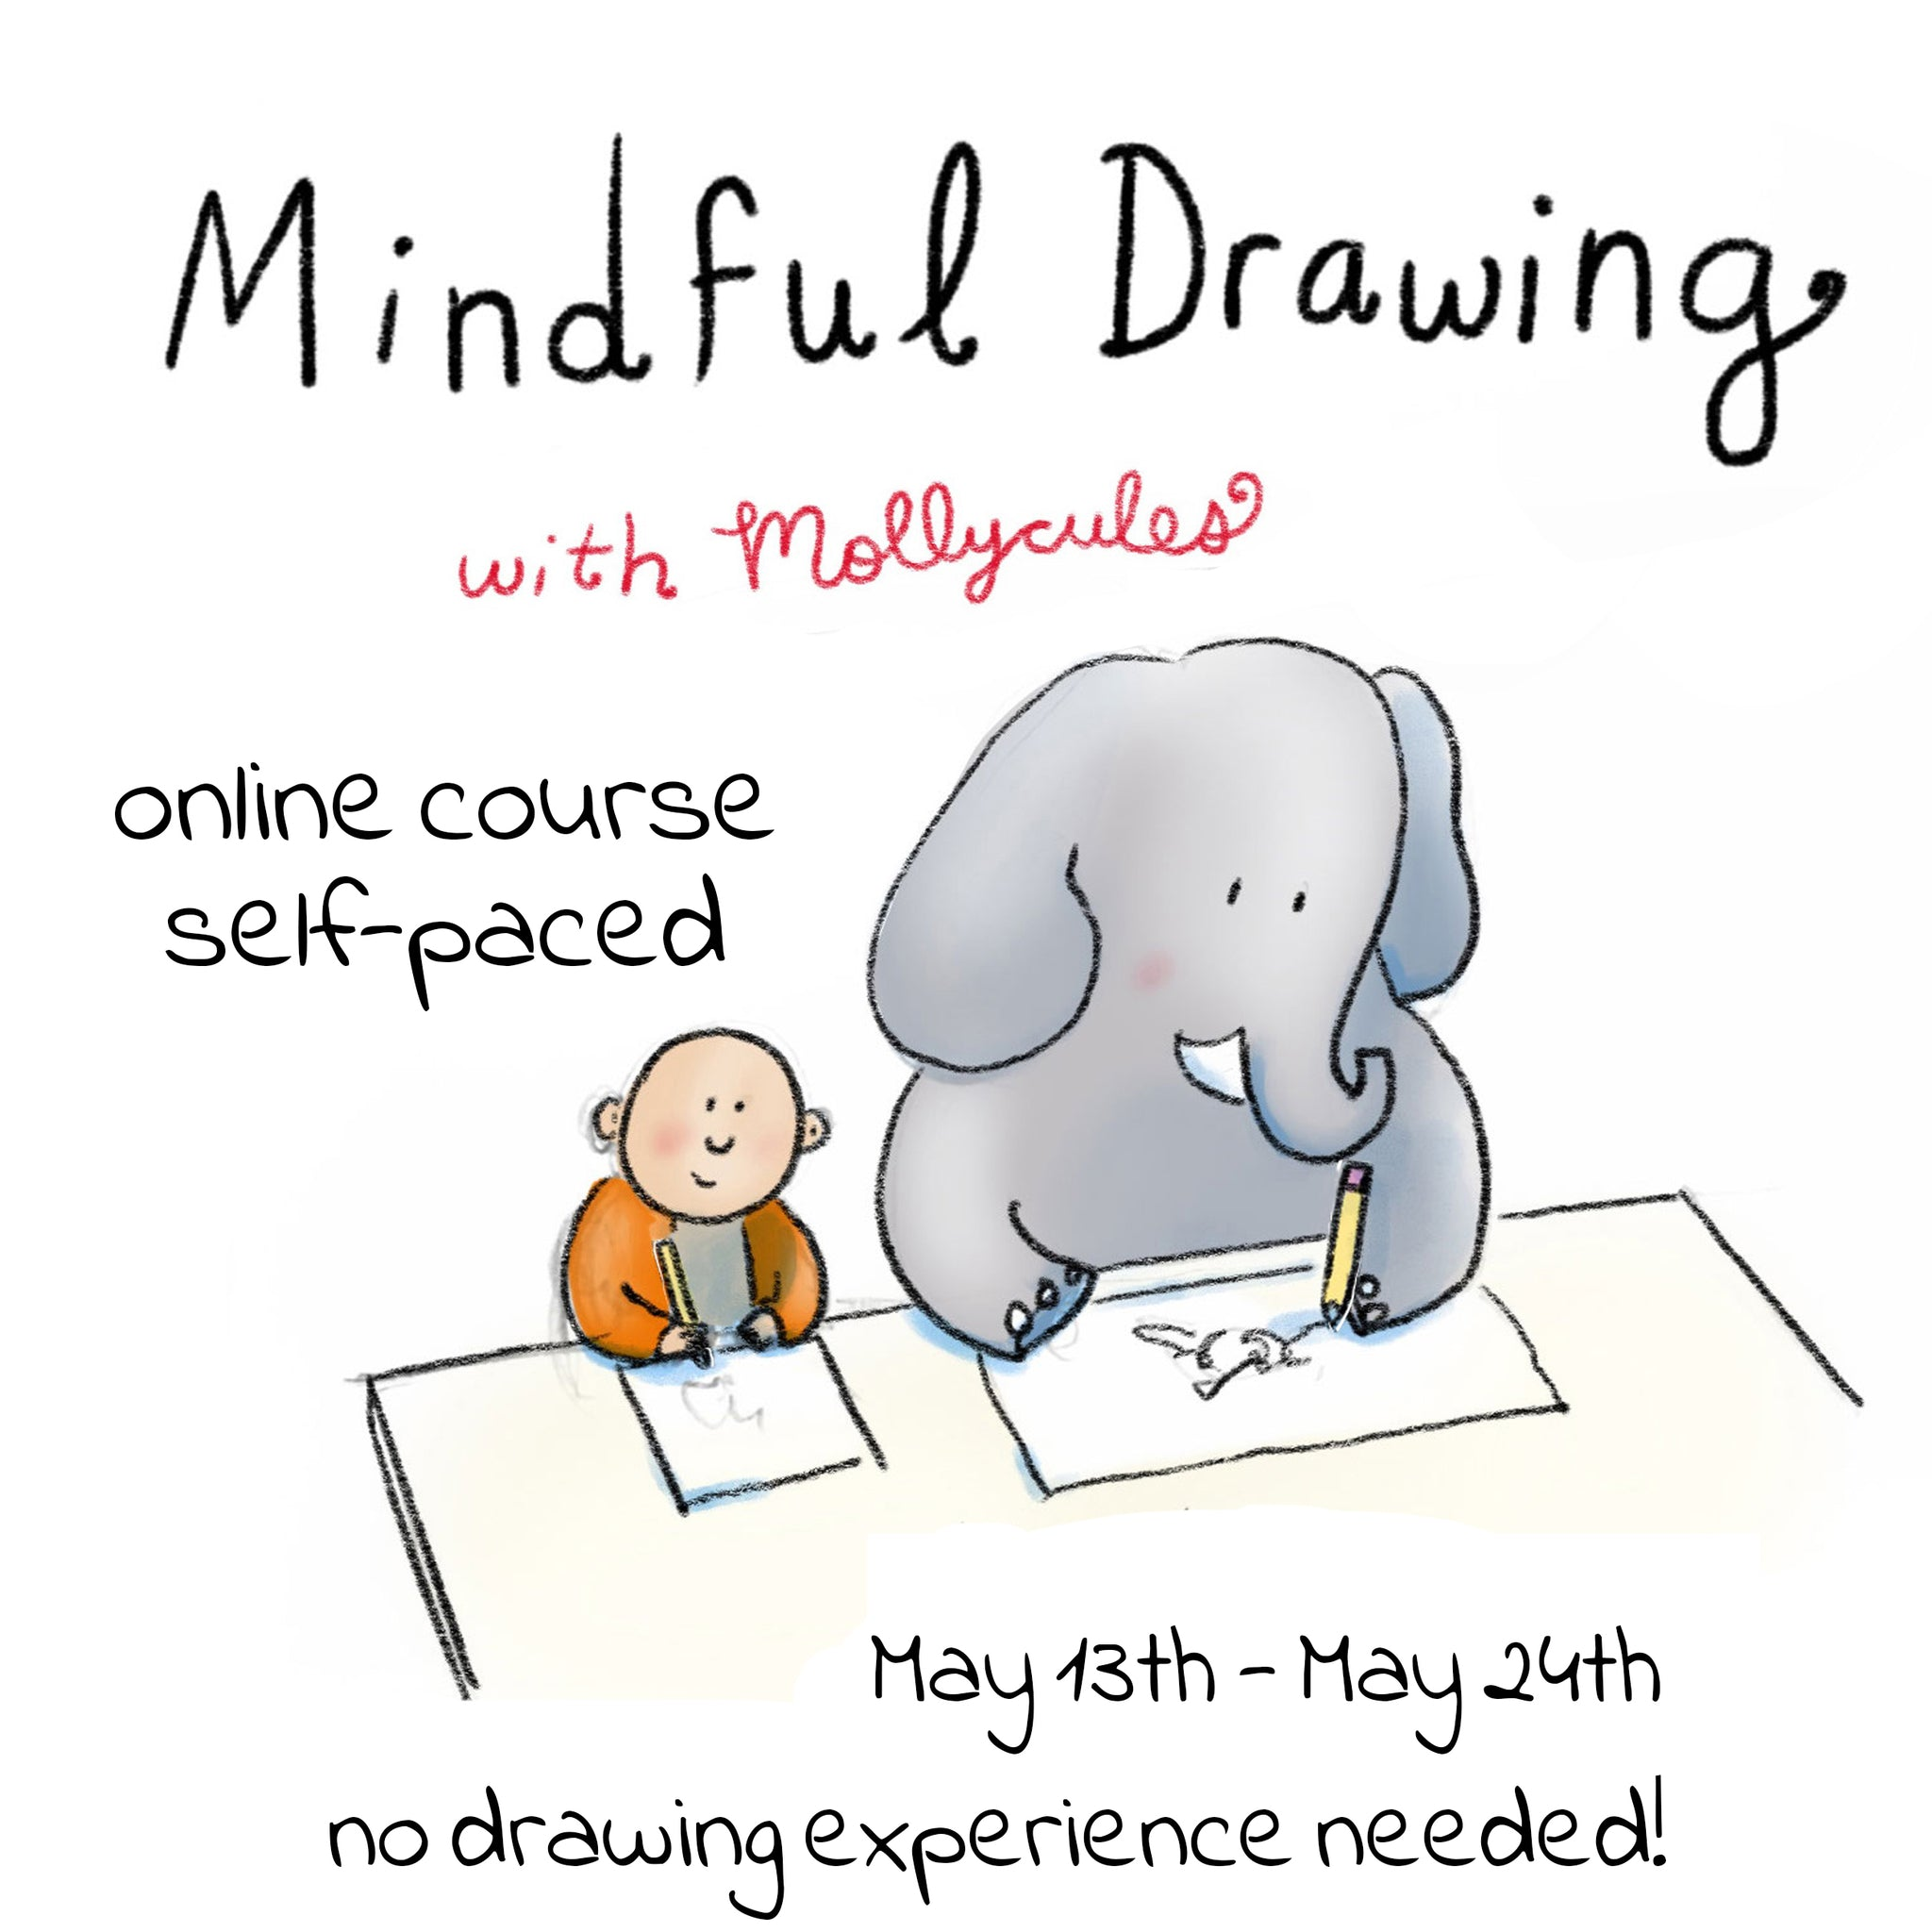 Mindful Drawing Online Course (May 13th-May 24th)